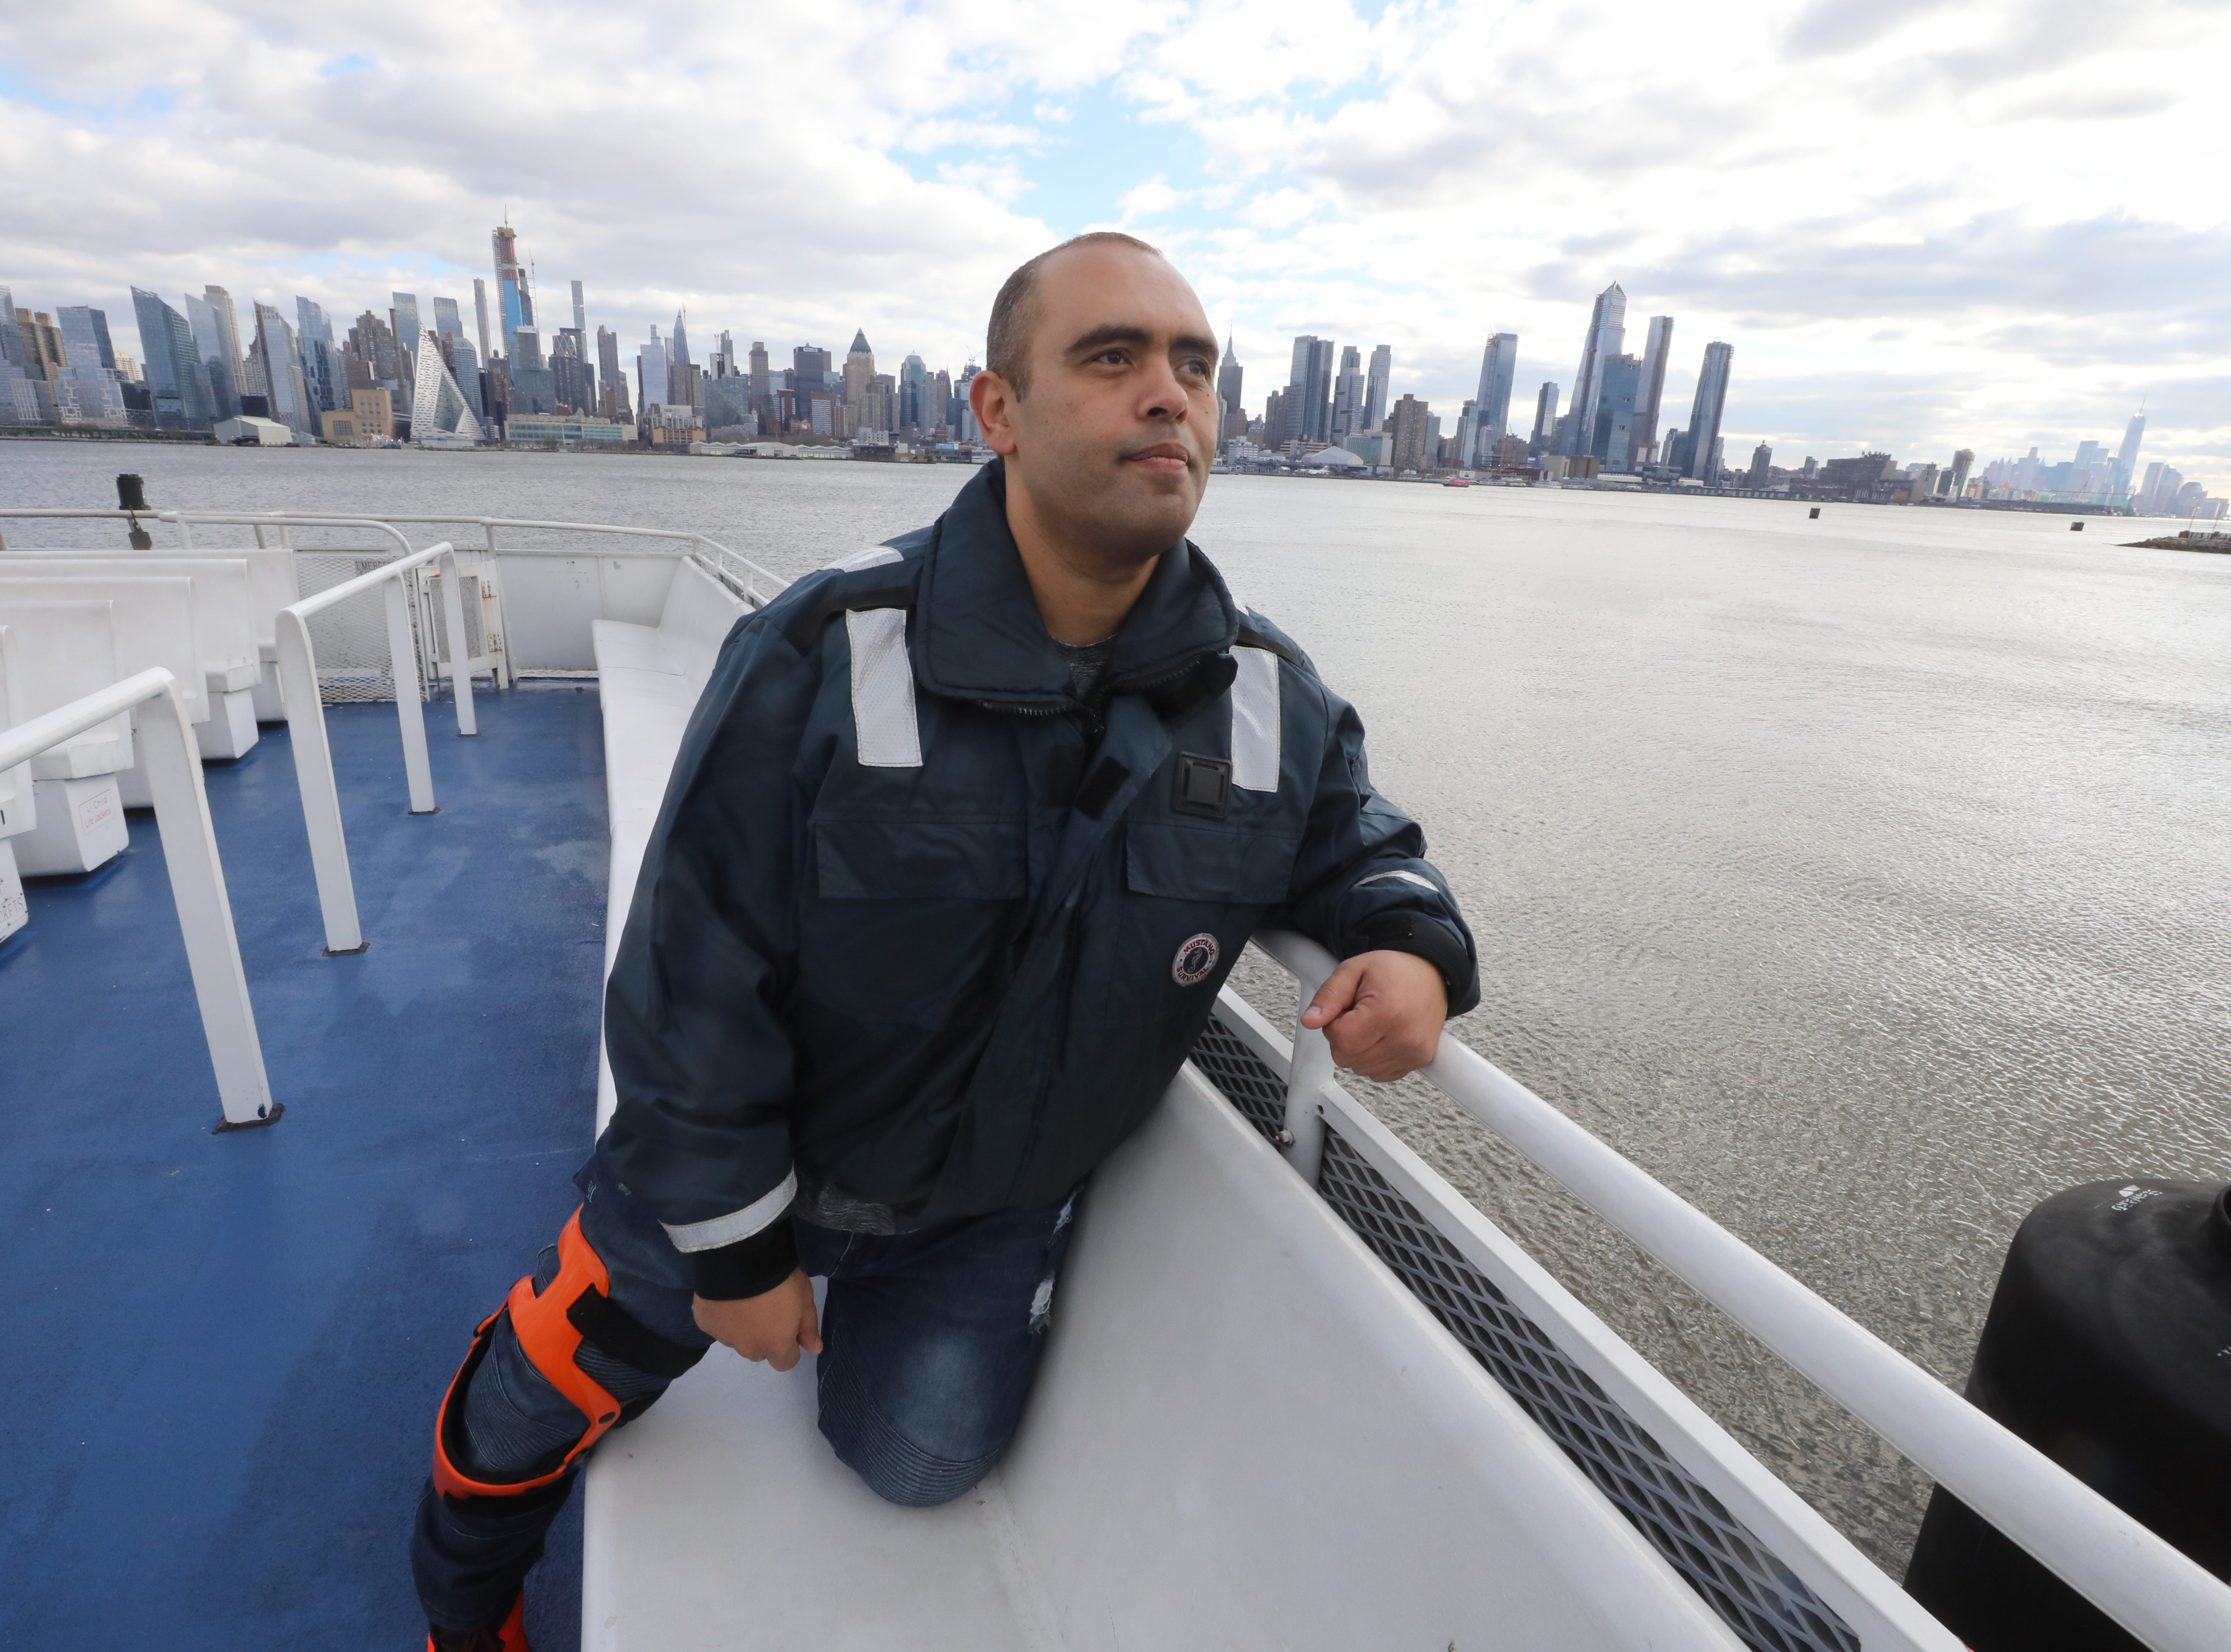 Captain Mohamed Gouda steered the ferry, George Washington to the site of the downed airliner 10 years ago saving some of the passengers. Here is Gouda on the Thomas Jefferson with the Manhattan skyline behind him on January 9, 2019, overlooking the site of the rescue.